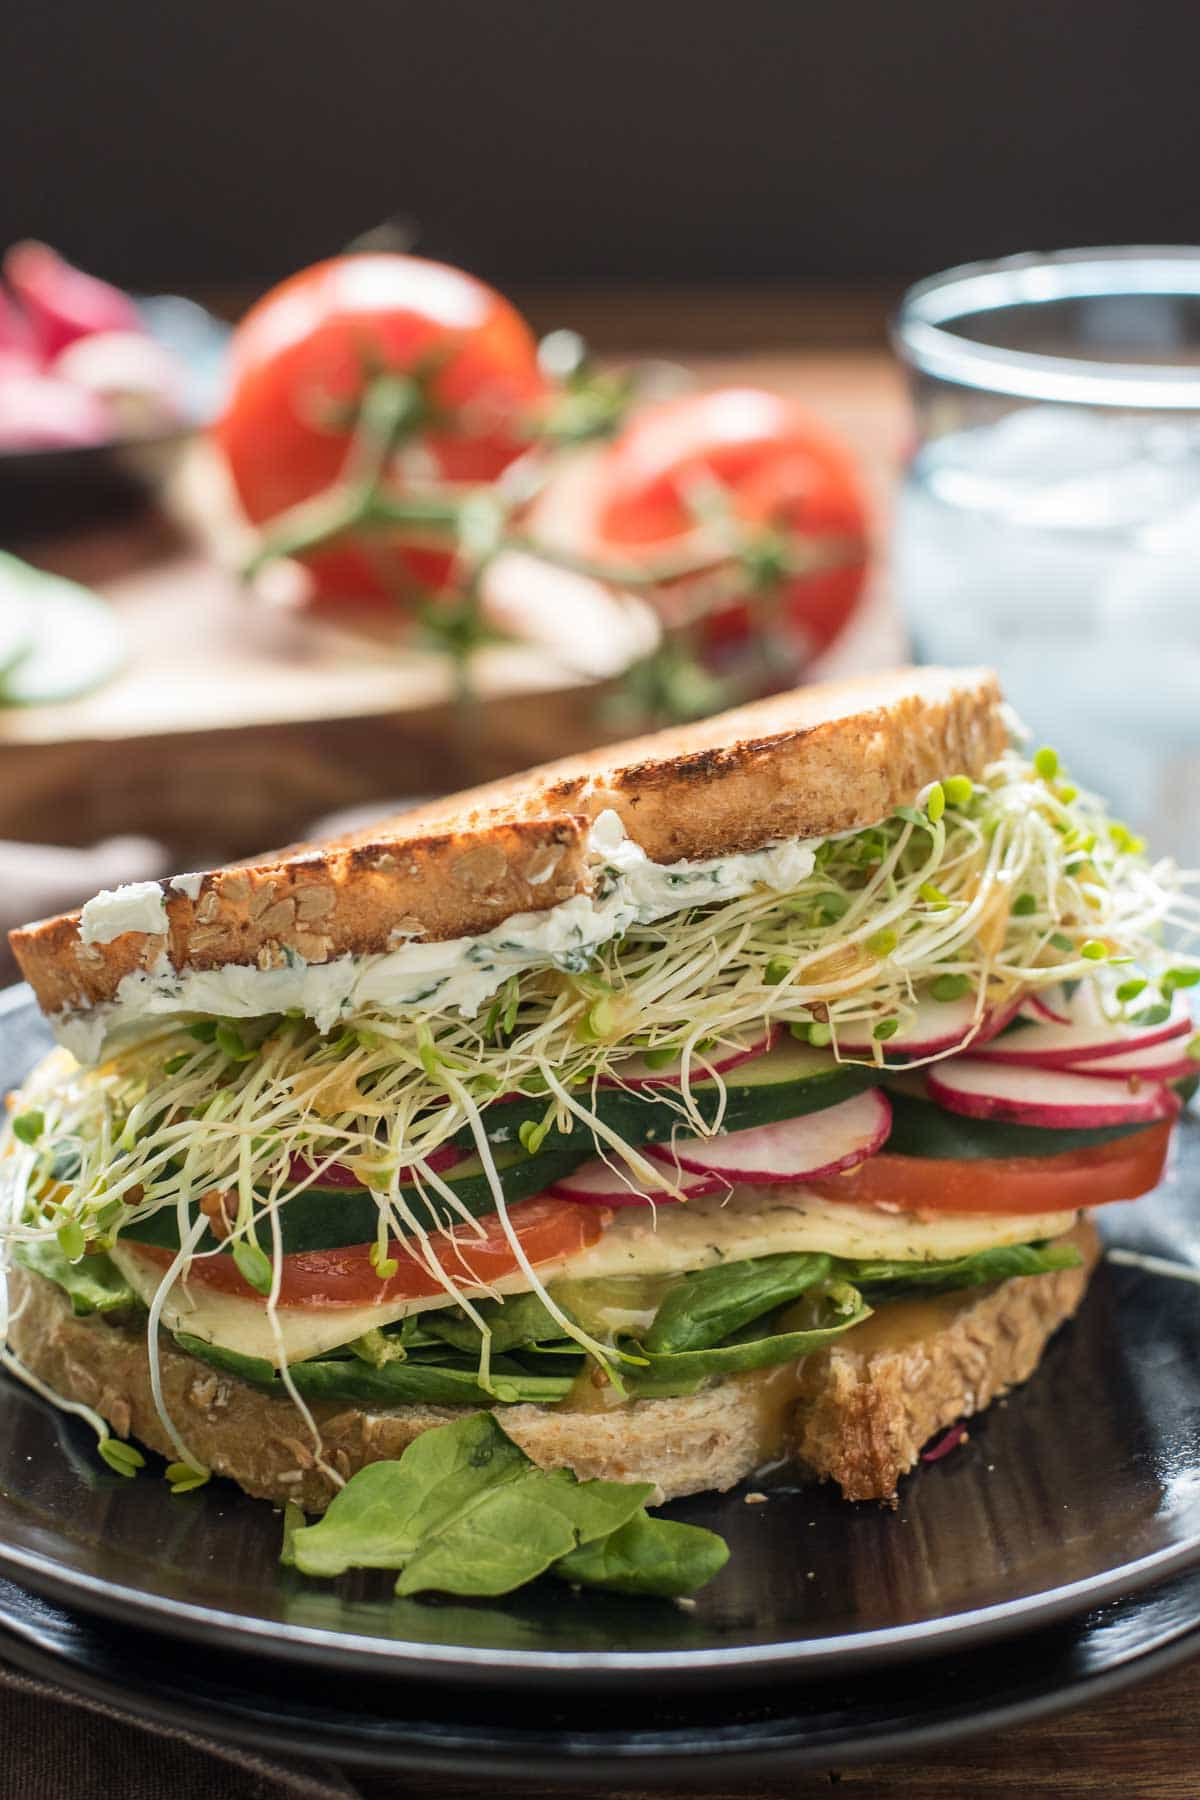 Herbed cream cheese and loads of summer vegetables make this the best veggie sandwich I've ever had!